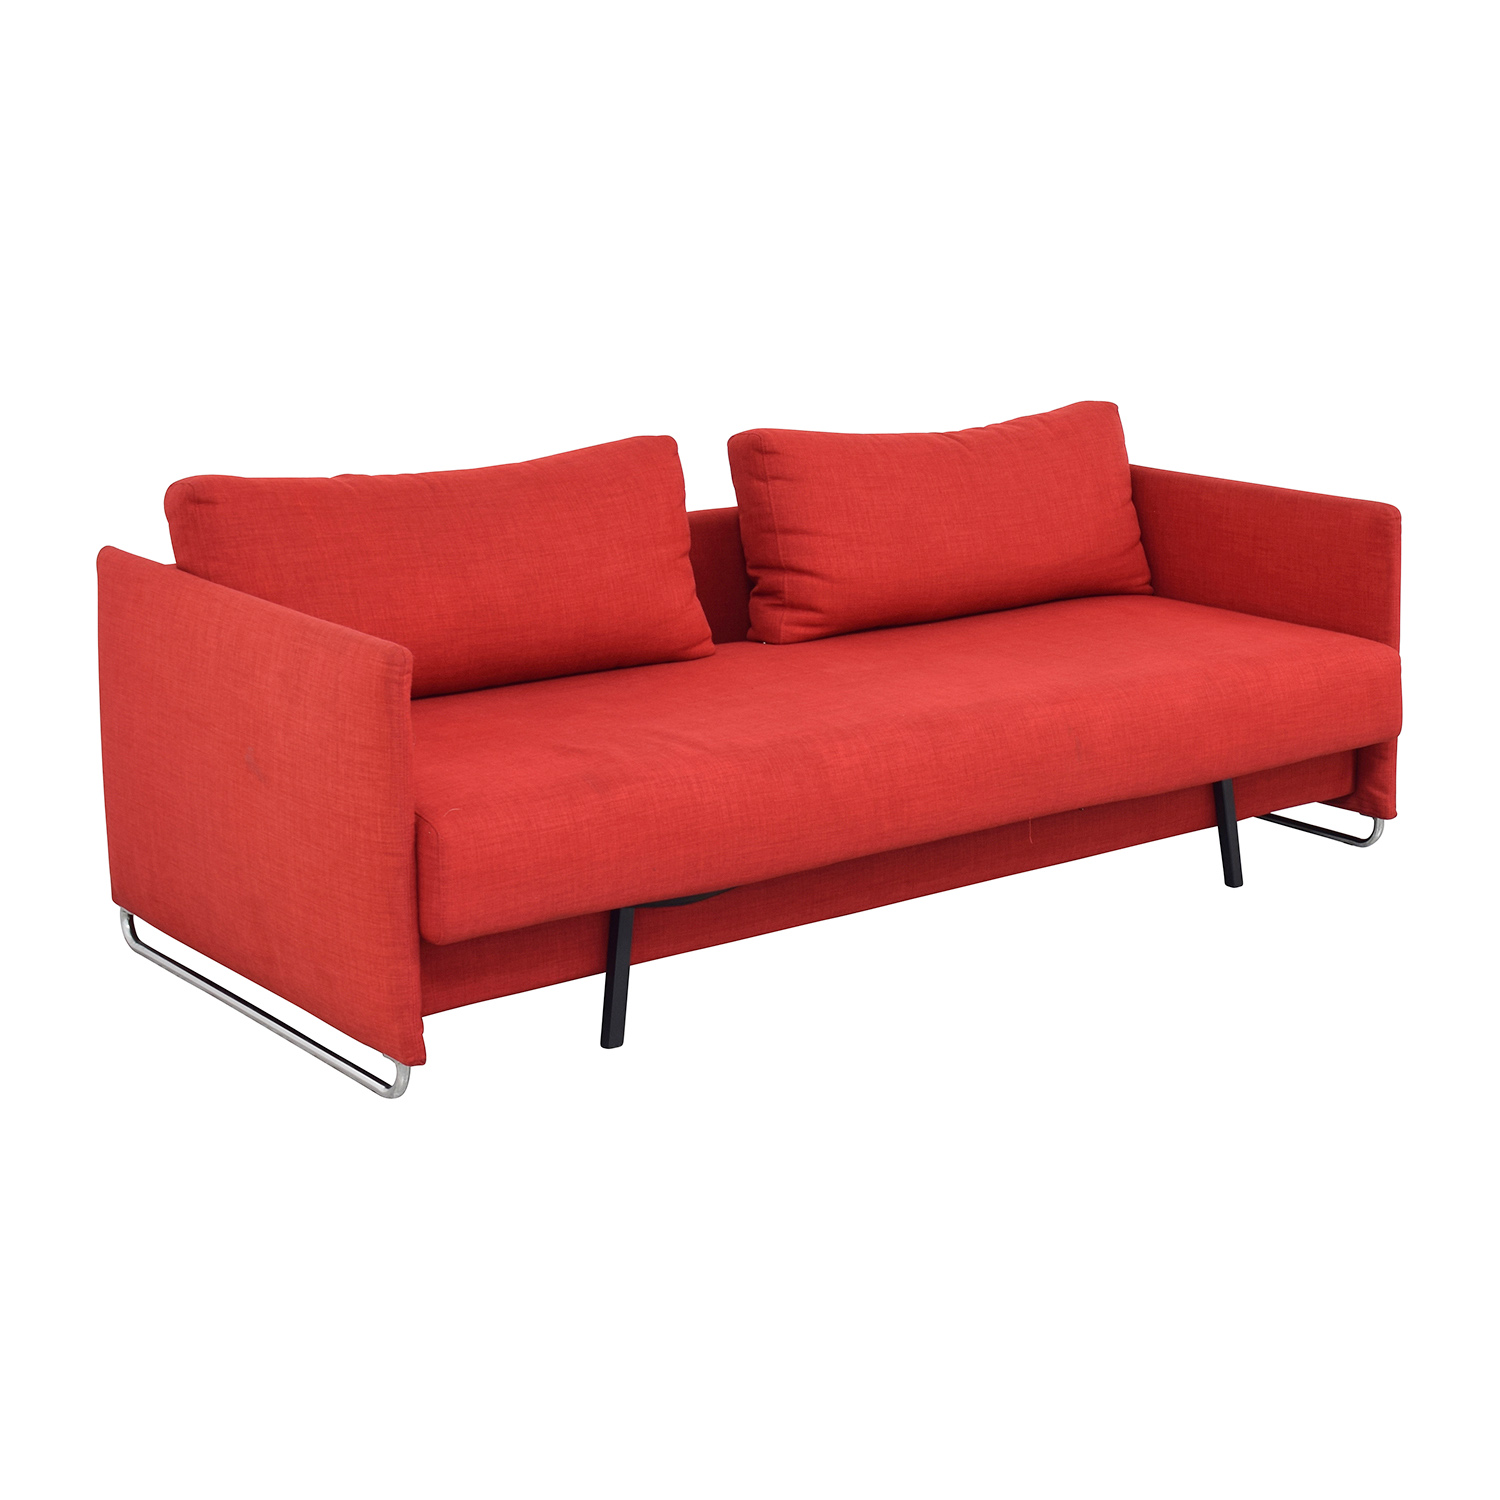 Tandom red sleeper sofa rs gold sofa Red sofas and loveseats